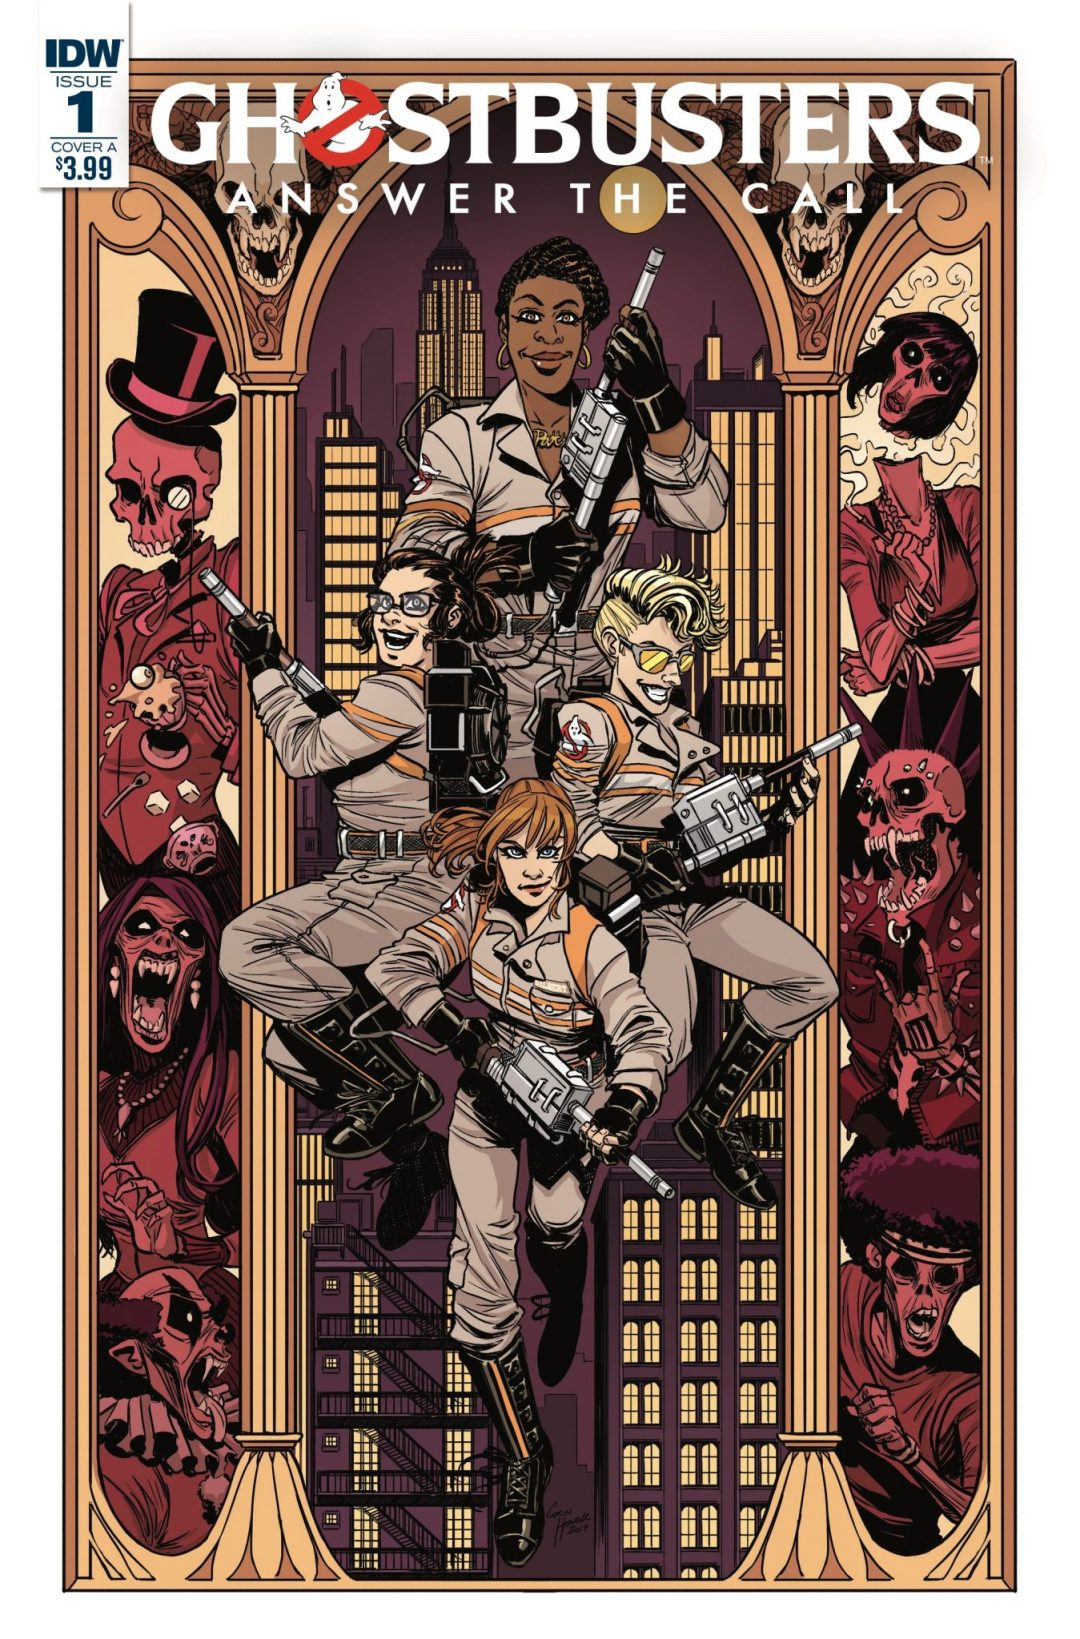 """'Ghostbusters' """"Answer the Call"""" Crew to Star in New Comic Series"""